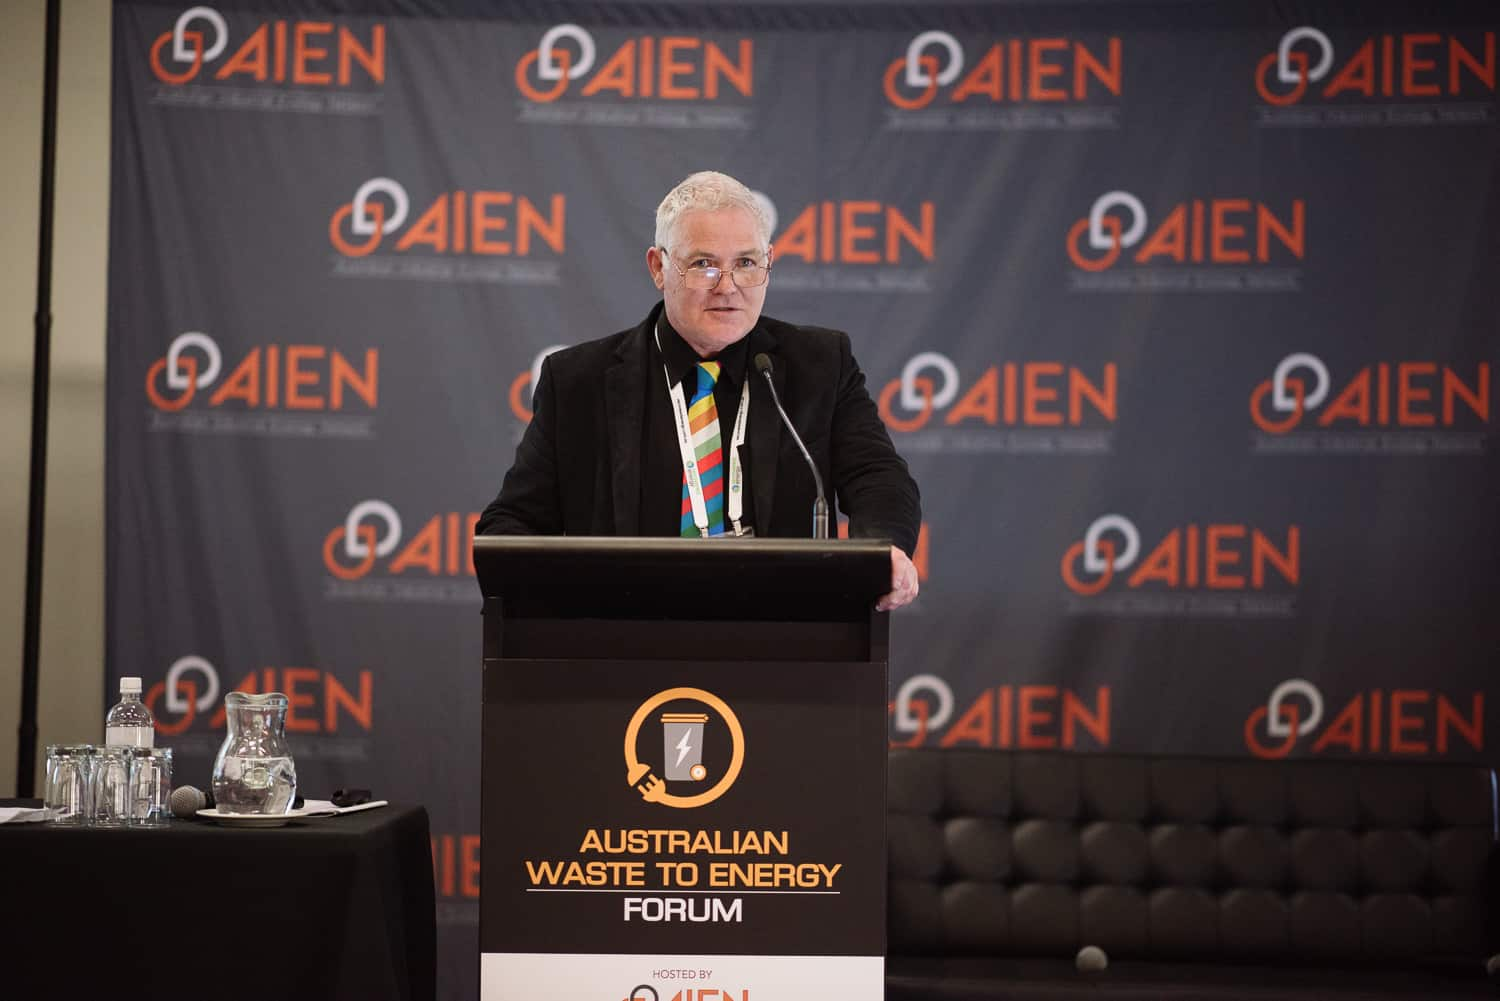 Colin Barker speaking at AIEN conference